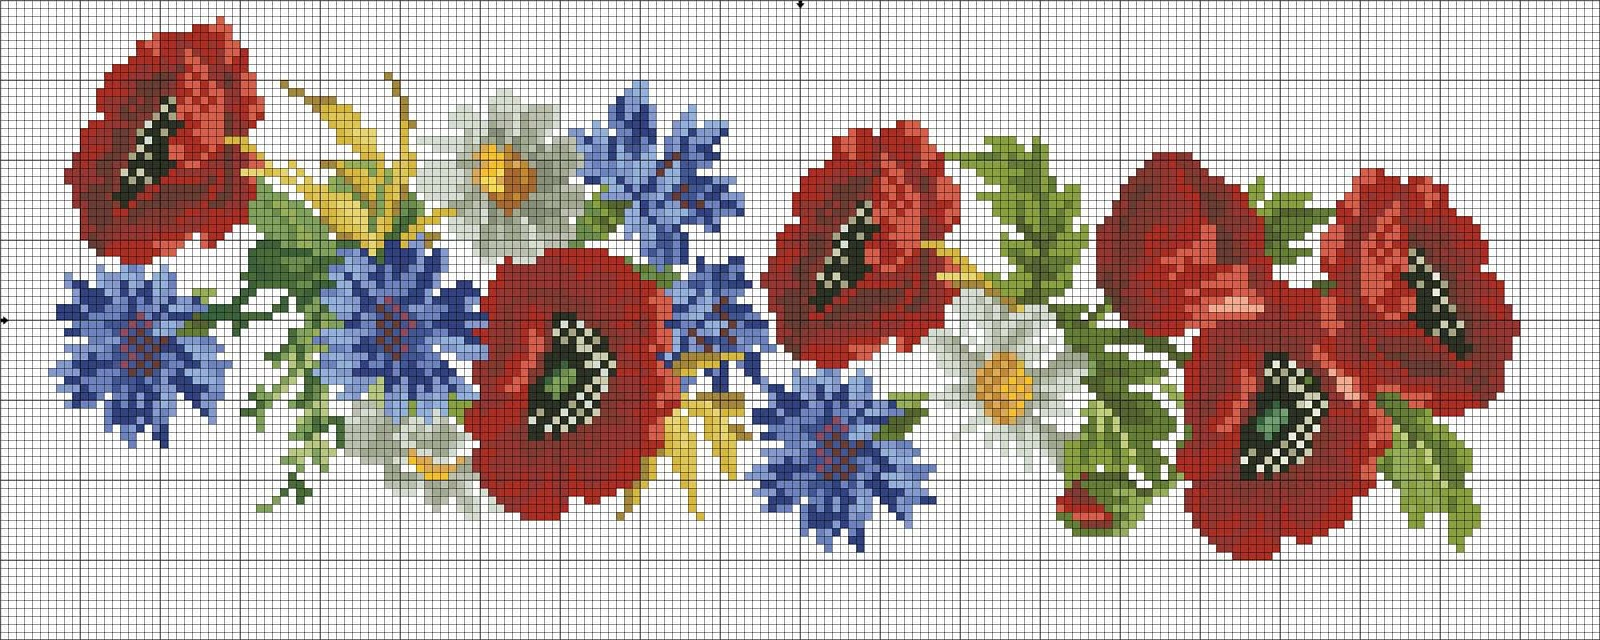 Cross Stitching Patterns - Free Printable Cross Stitch